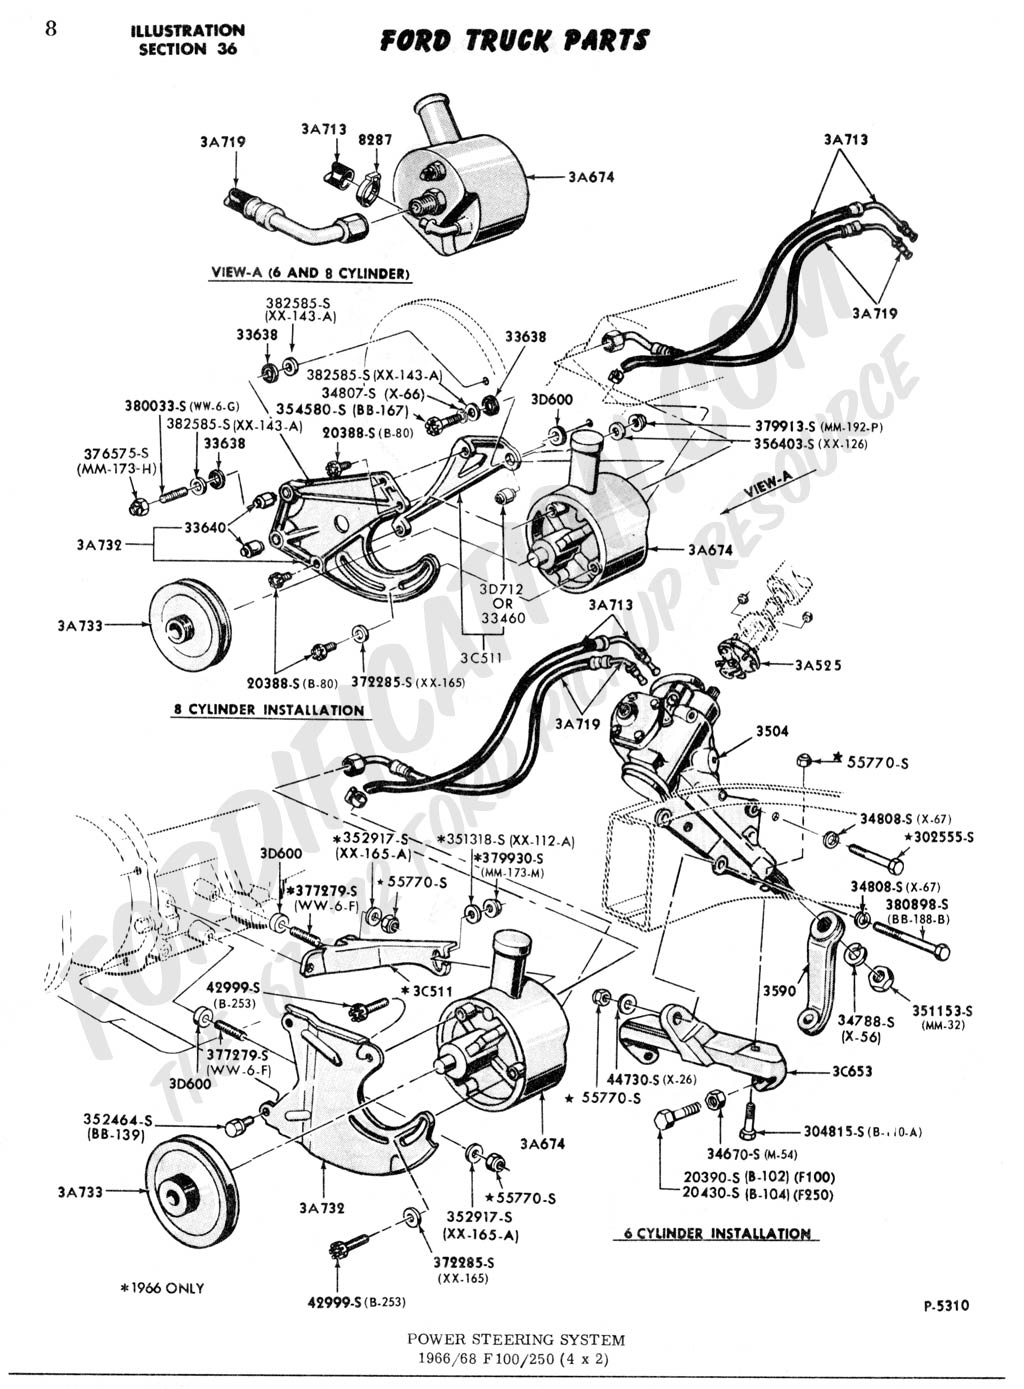 Wd Pwrsteering on 1960 Chevy Truck Wiring Diagram